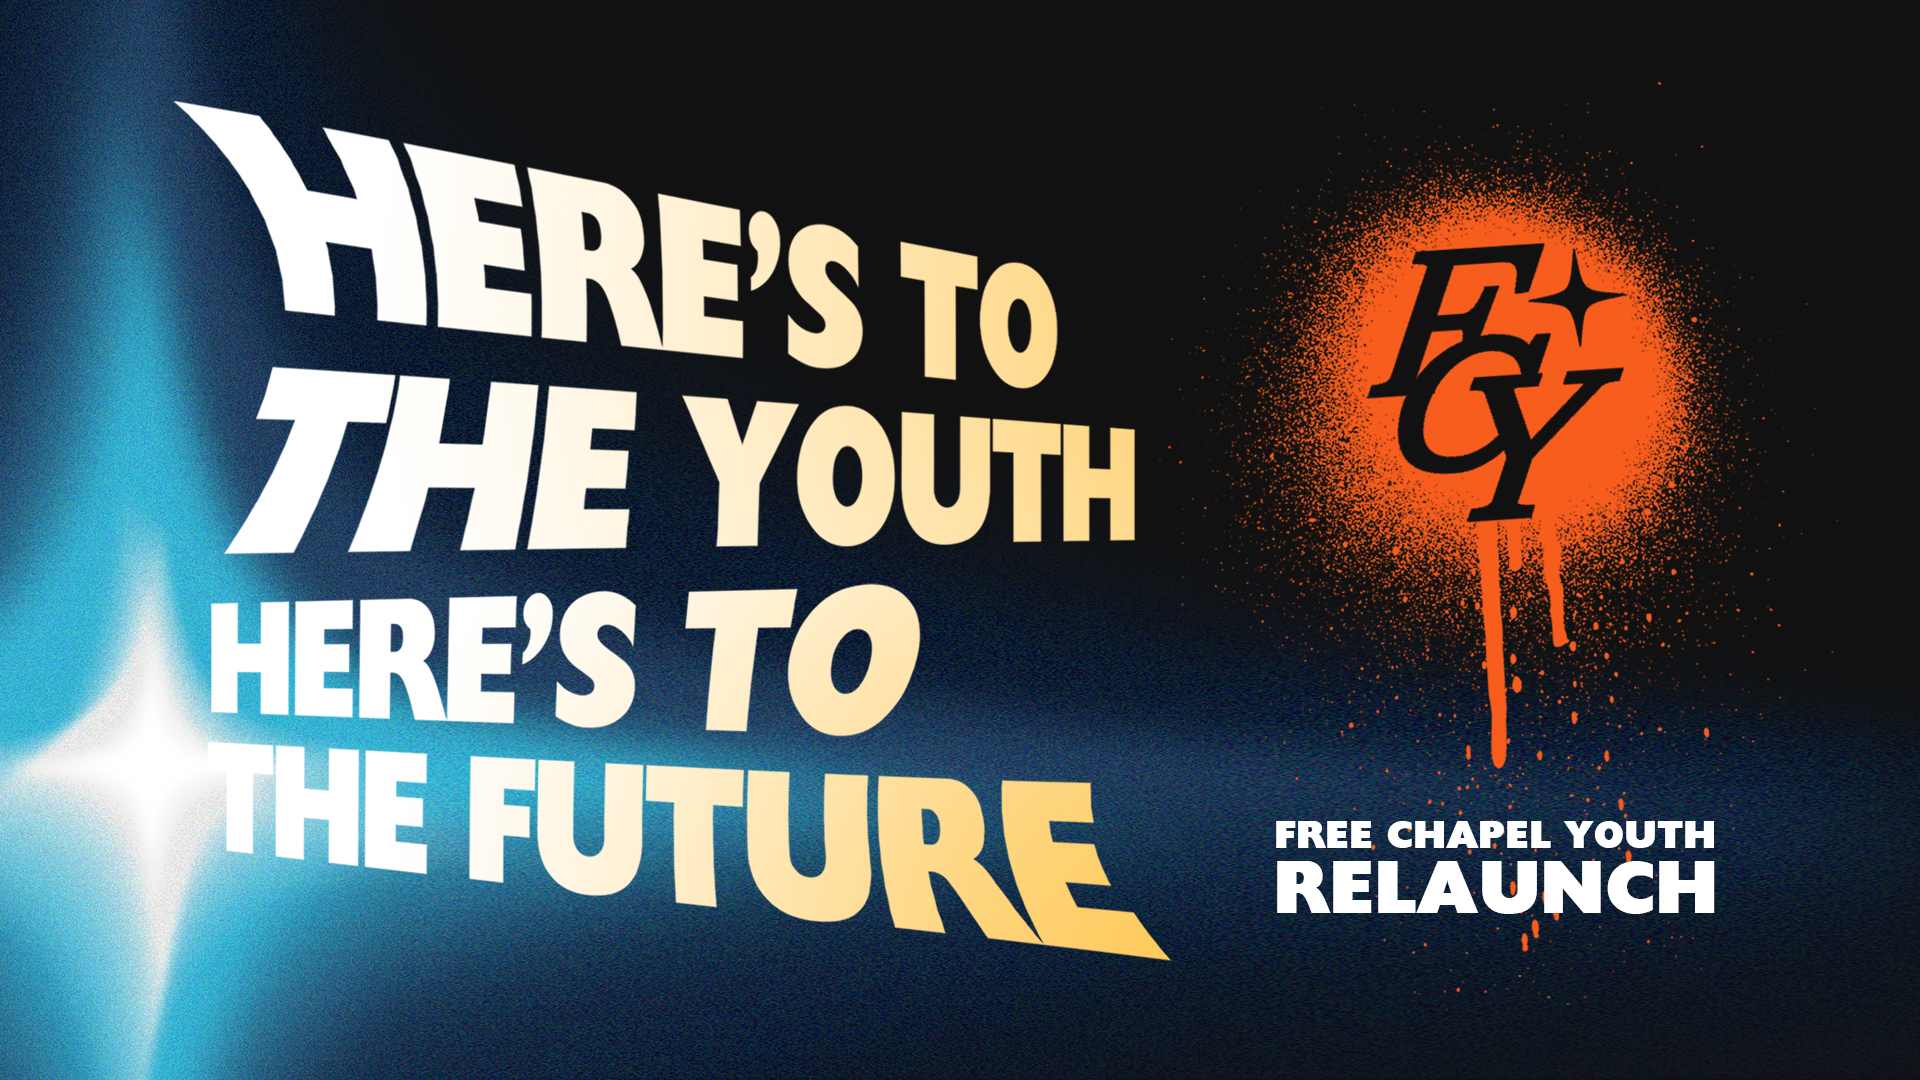 Free Chapel Youth Relaunch! at the Midtown campus